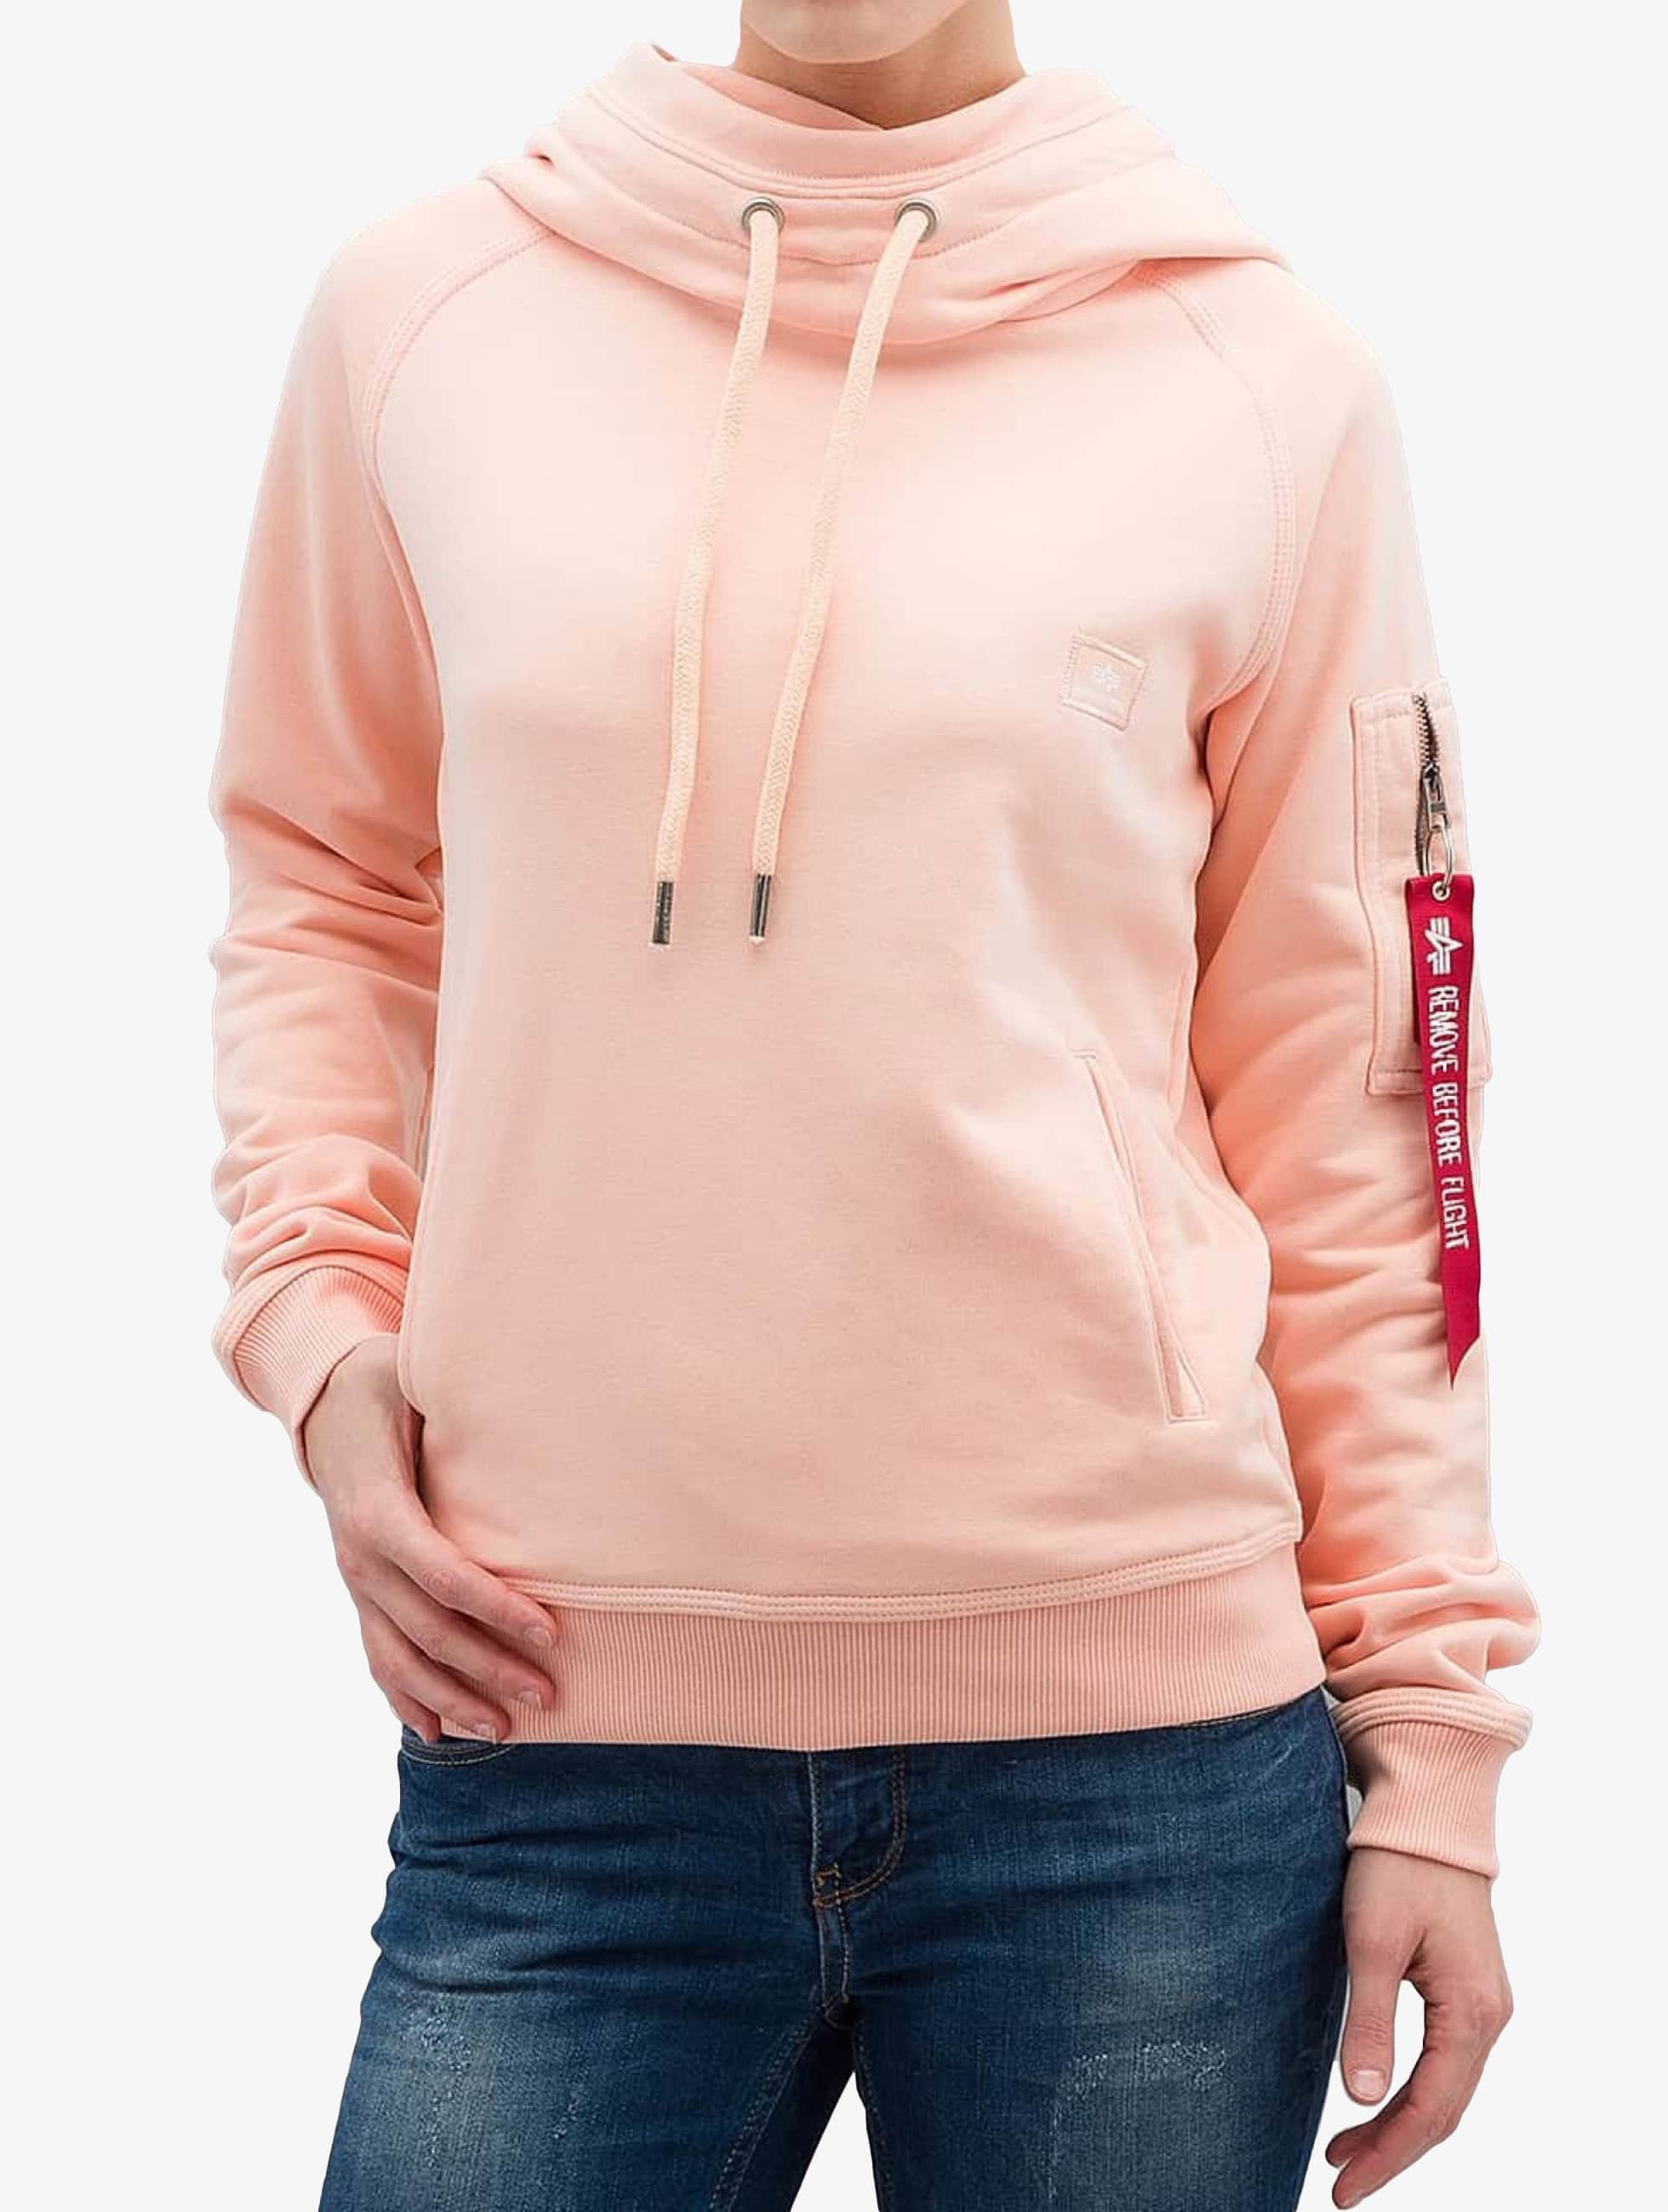 Alpha-Industries-Donne-Maglieria-Felpa-con-cappuccio-X-Fit